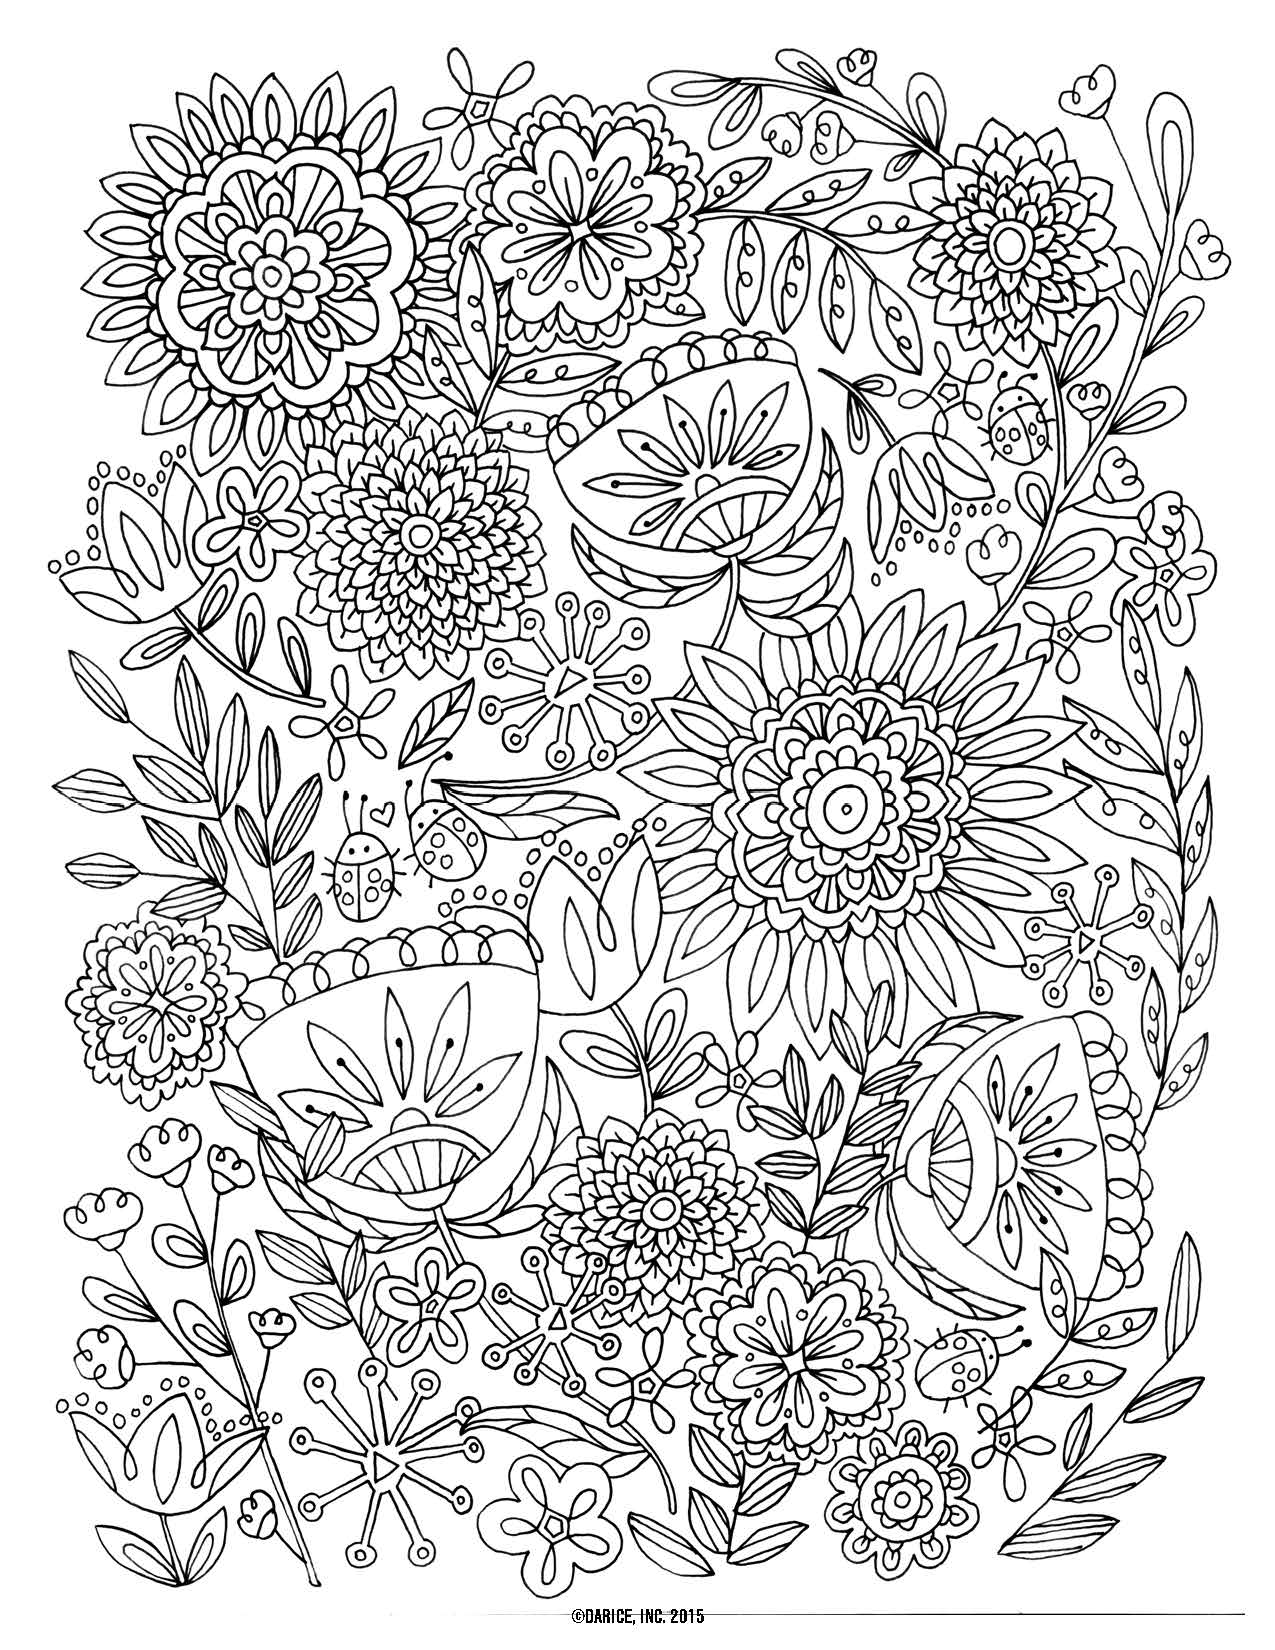 Flower Coloring Pages For Adults - Coloring Home